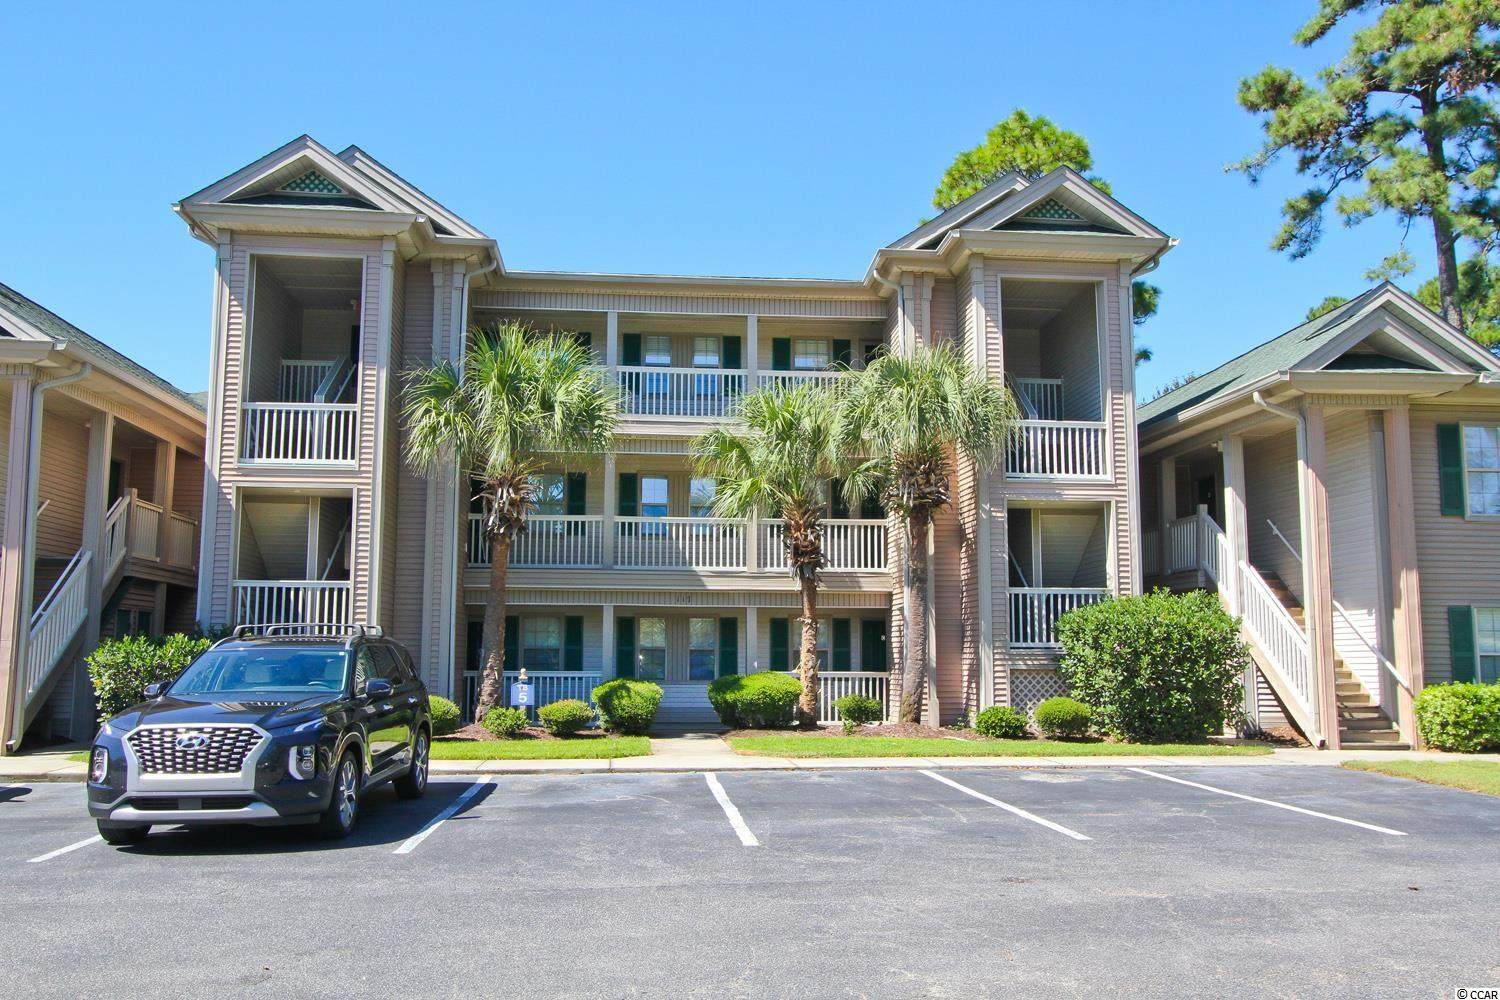 Desirable 2 BR 2 BA, 1st floor furnished unit with panoramic views of lake located on a par 3 #16 at True Blue in Pawleys Island.  Screened porch is accessible from both the main living area and the master bedroom.  Each unit has a outside storage closet.  HVAC updated in 2017.  The True Blue Community is a beautiful place to live, vacation, or invest.  Amenities include swimming pools, hot tubs, tennis courts and a clubhouse with a restaurant serving breakfast and lunch.  Owners enjoy reduced golf rates.  True Blue is located near shopping, restaurants, and the beaches too!